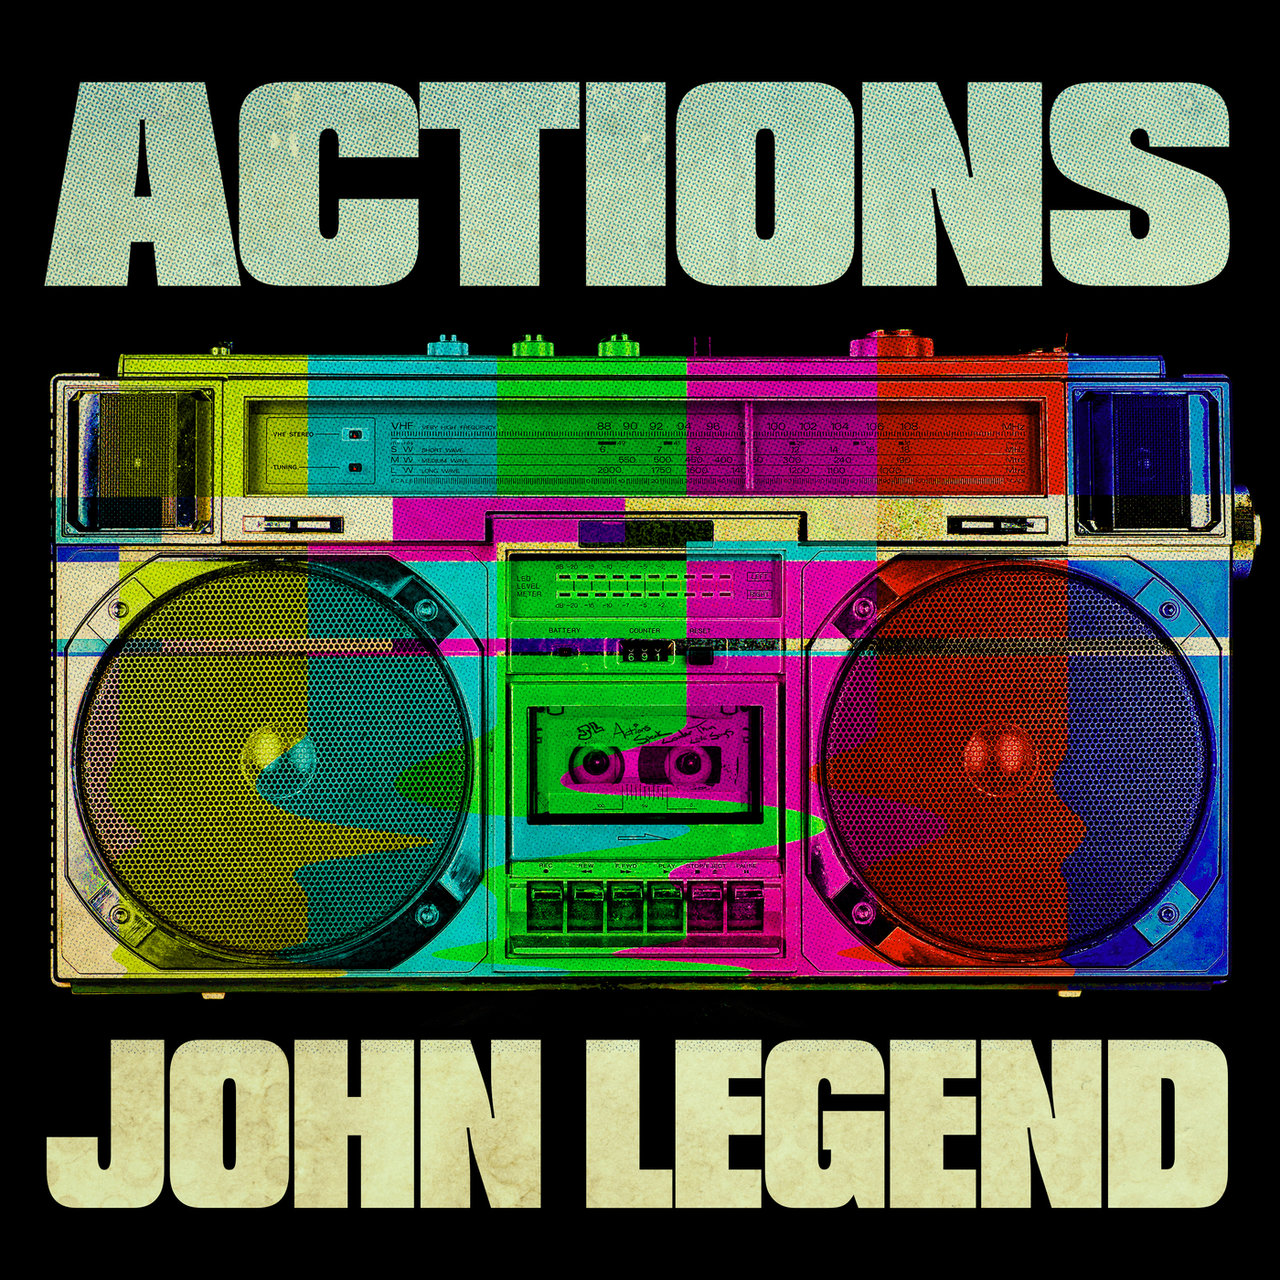 John Legend - Actions (Cover)